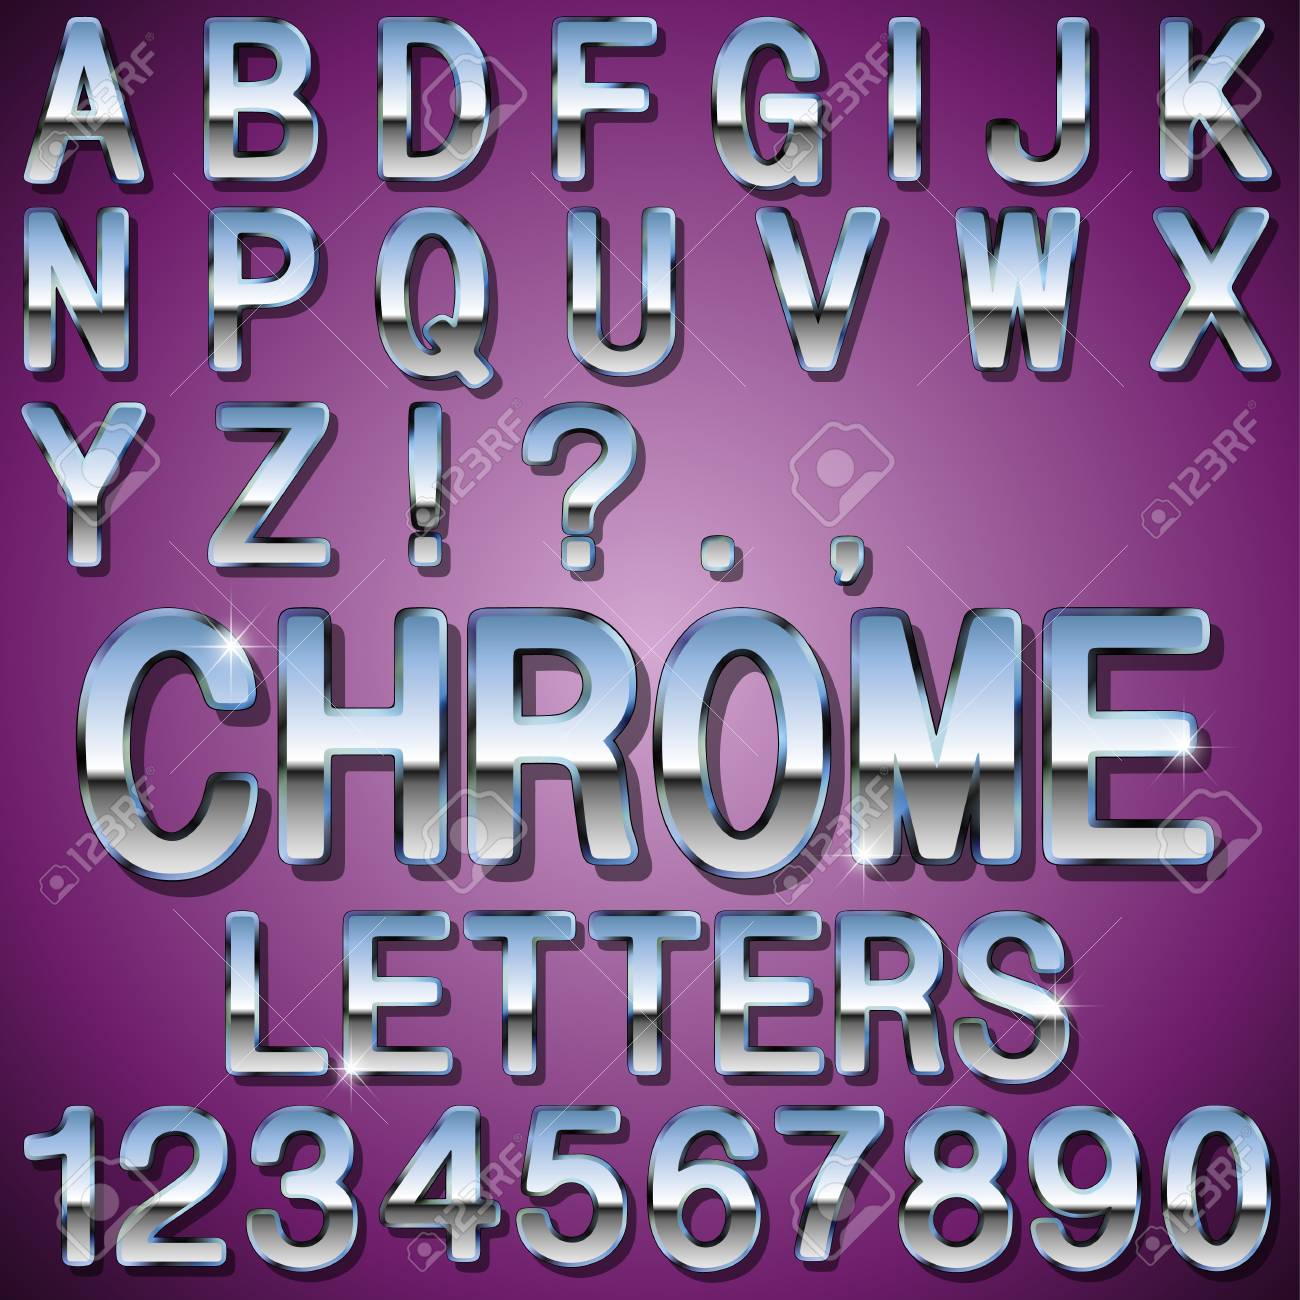 Metal Letters And Numbers Mesmerizing An Alphabet Sit Of Shiny Chrome Metal Letters And Numbers Royalty Decorating Design